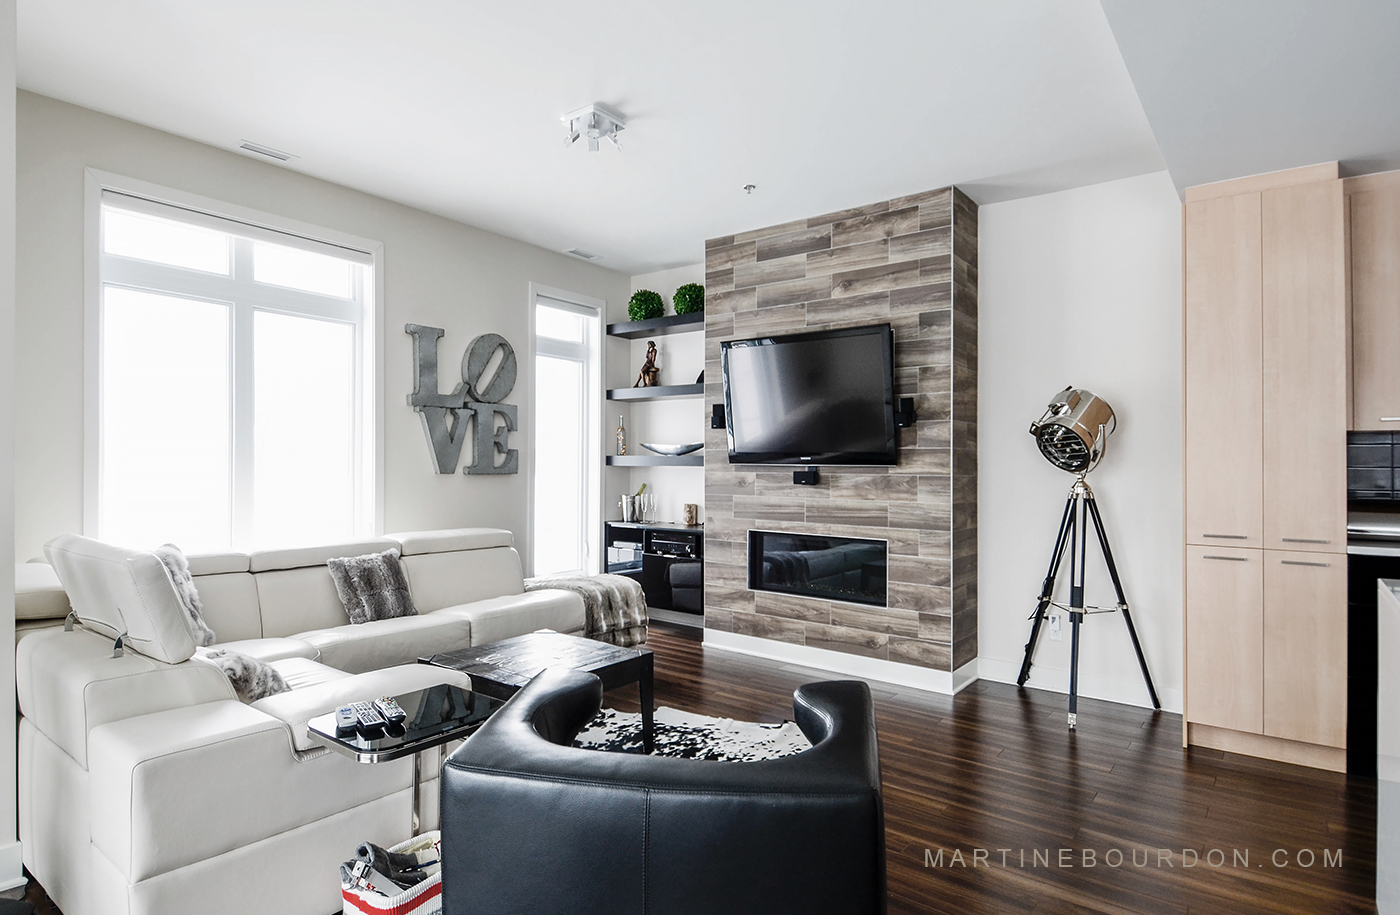 Condo neuf la touche d co qui fait la diff rence martine bourdon d coratrice d 39 int rieur for Deco mur tv